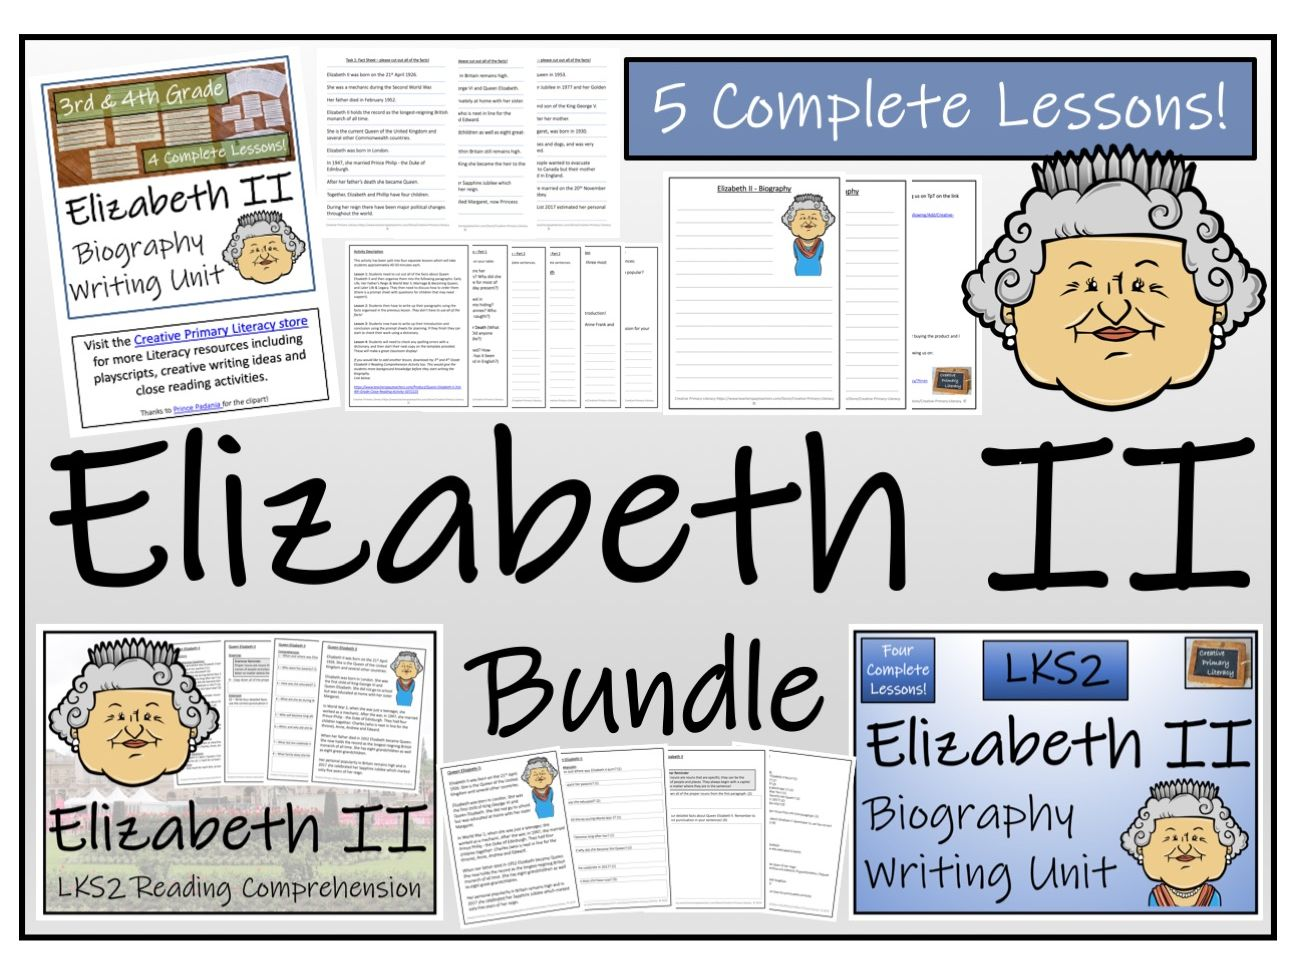 LKS2 Literacy - Queen Elizabeth II Reading Comprehension & Biography Bundle